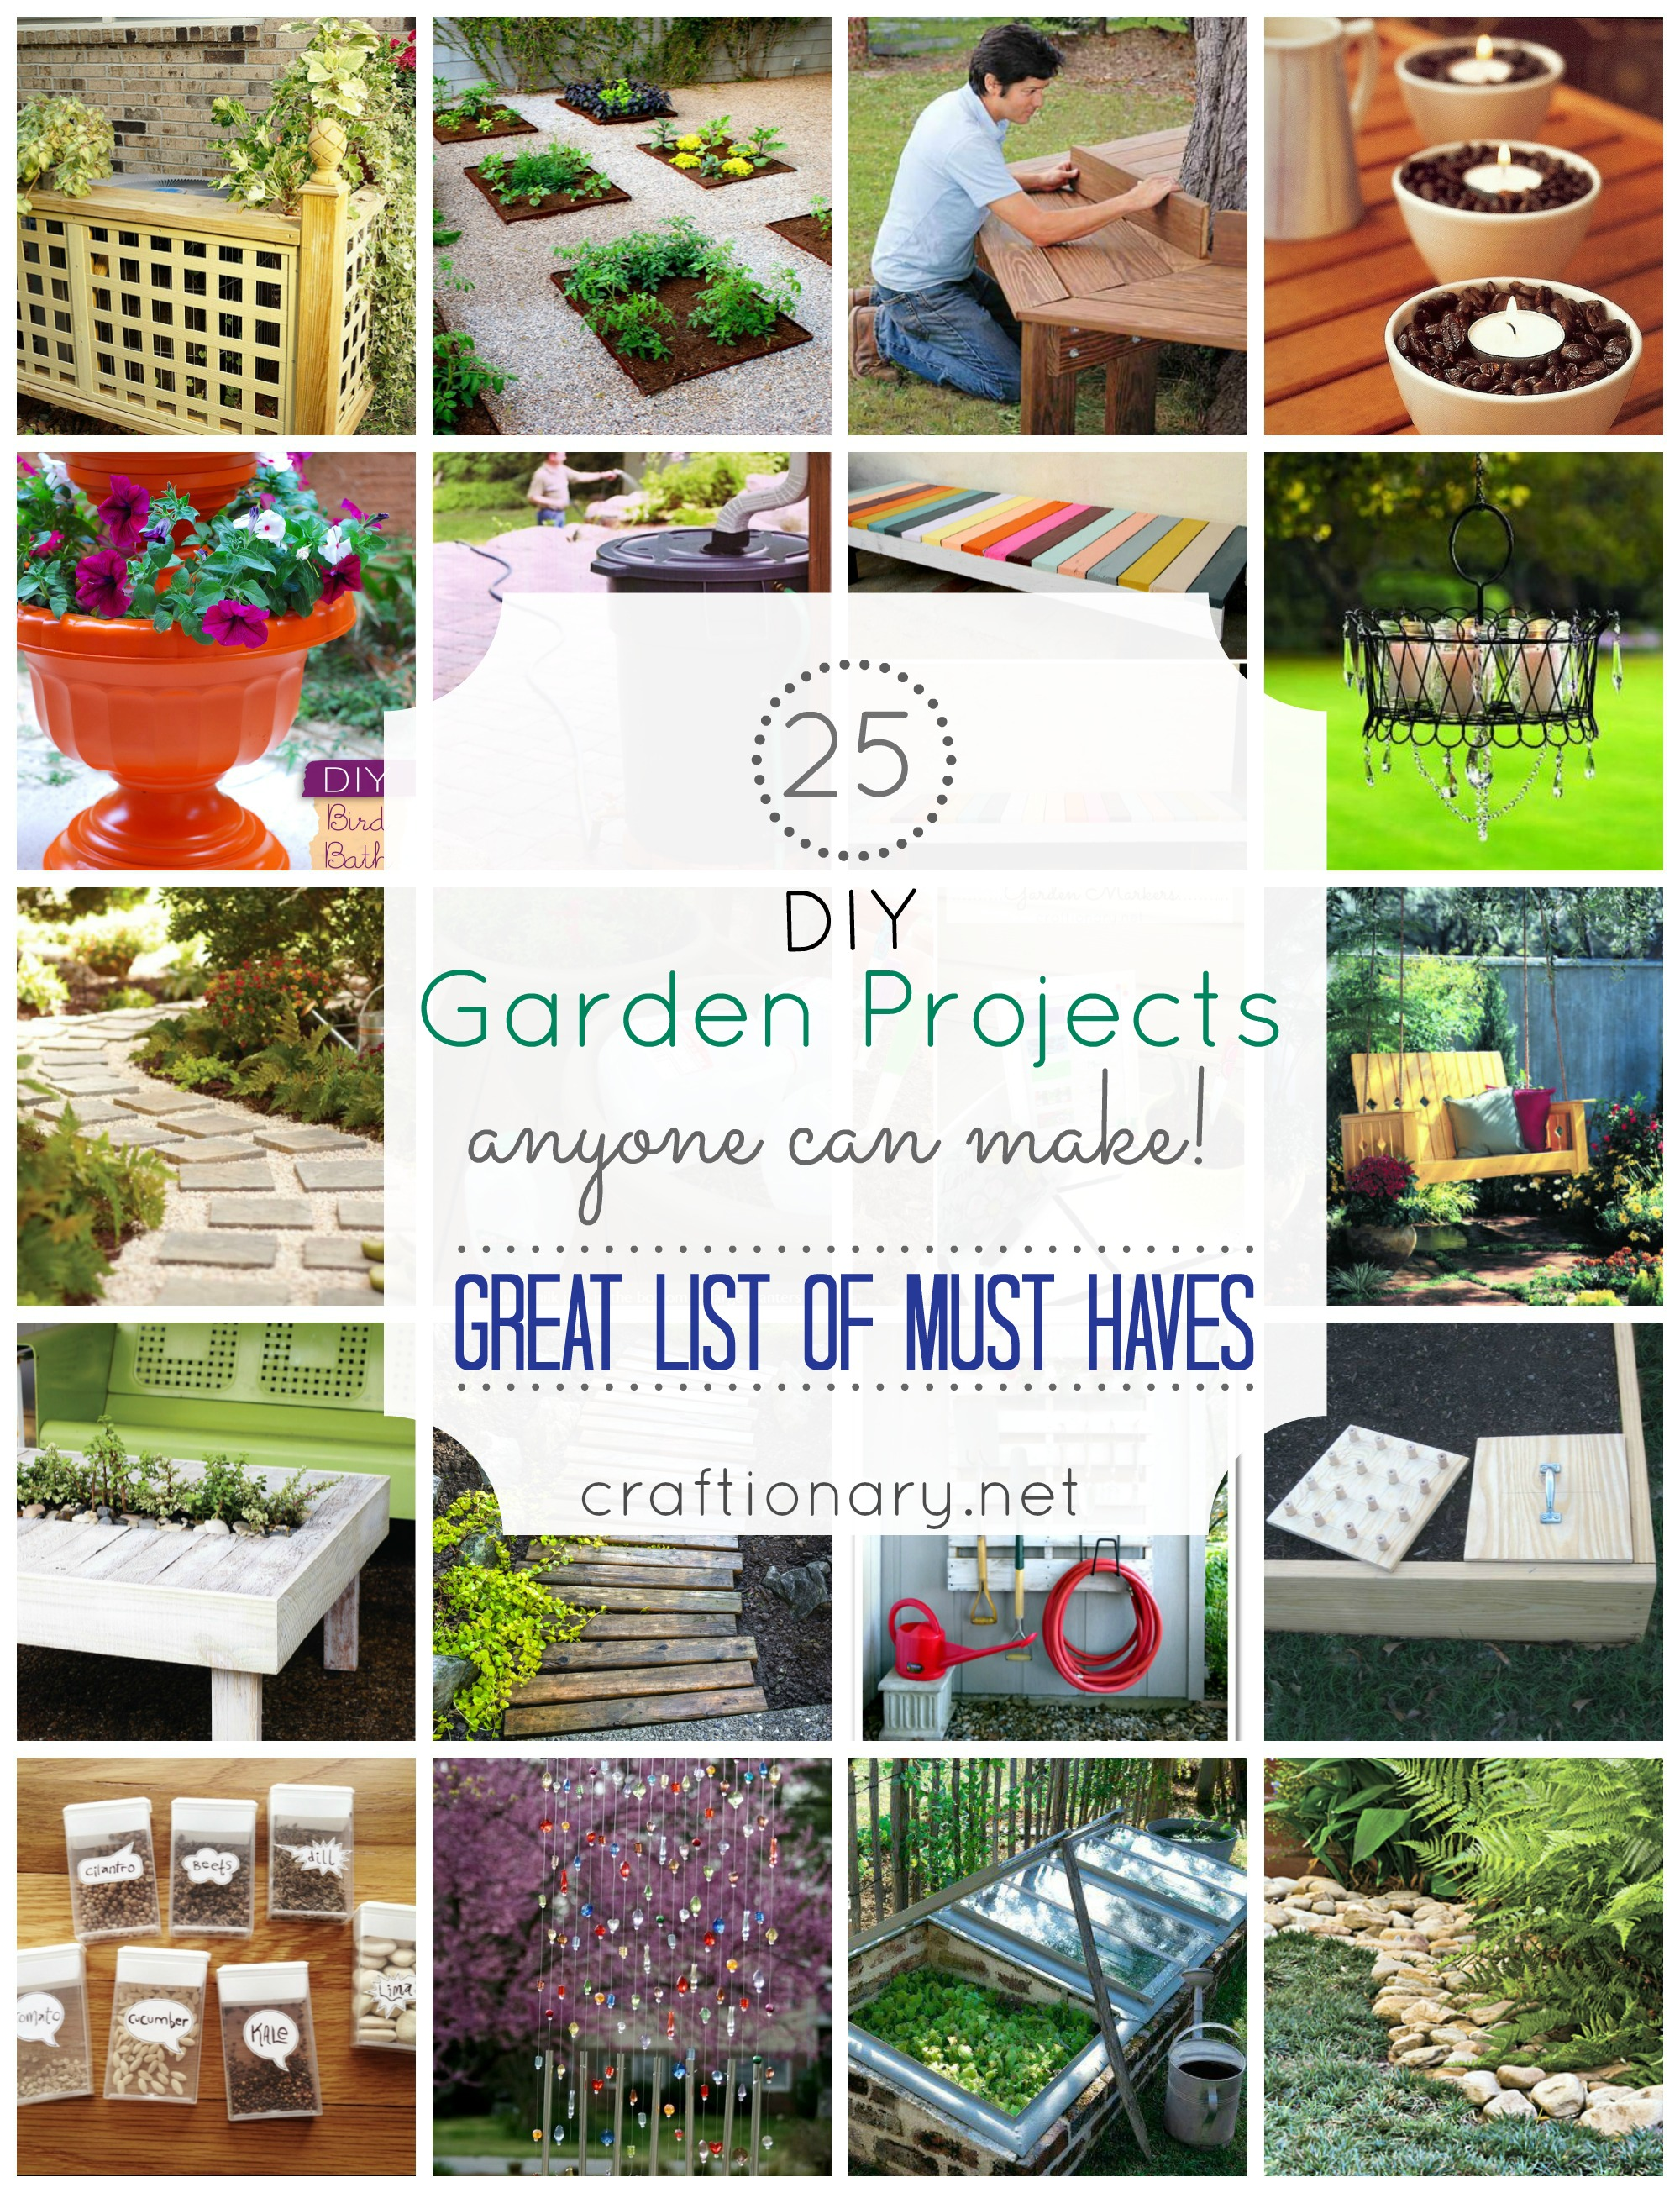 Diy garden craft ideas pdf for Diy home garden design